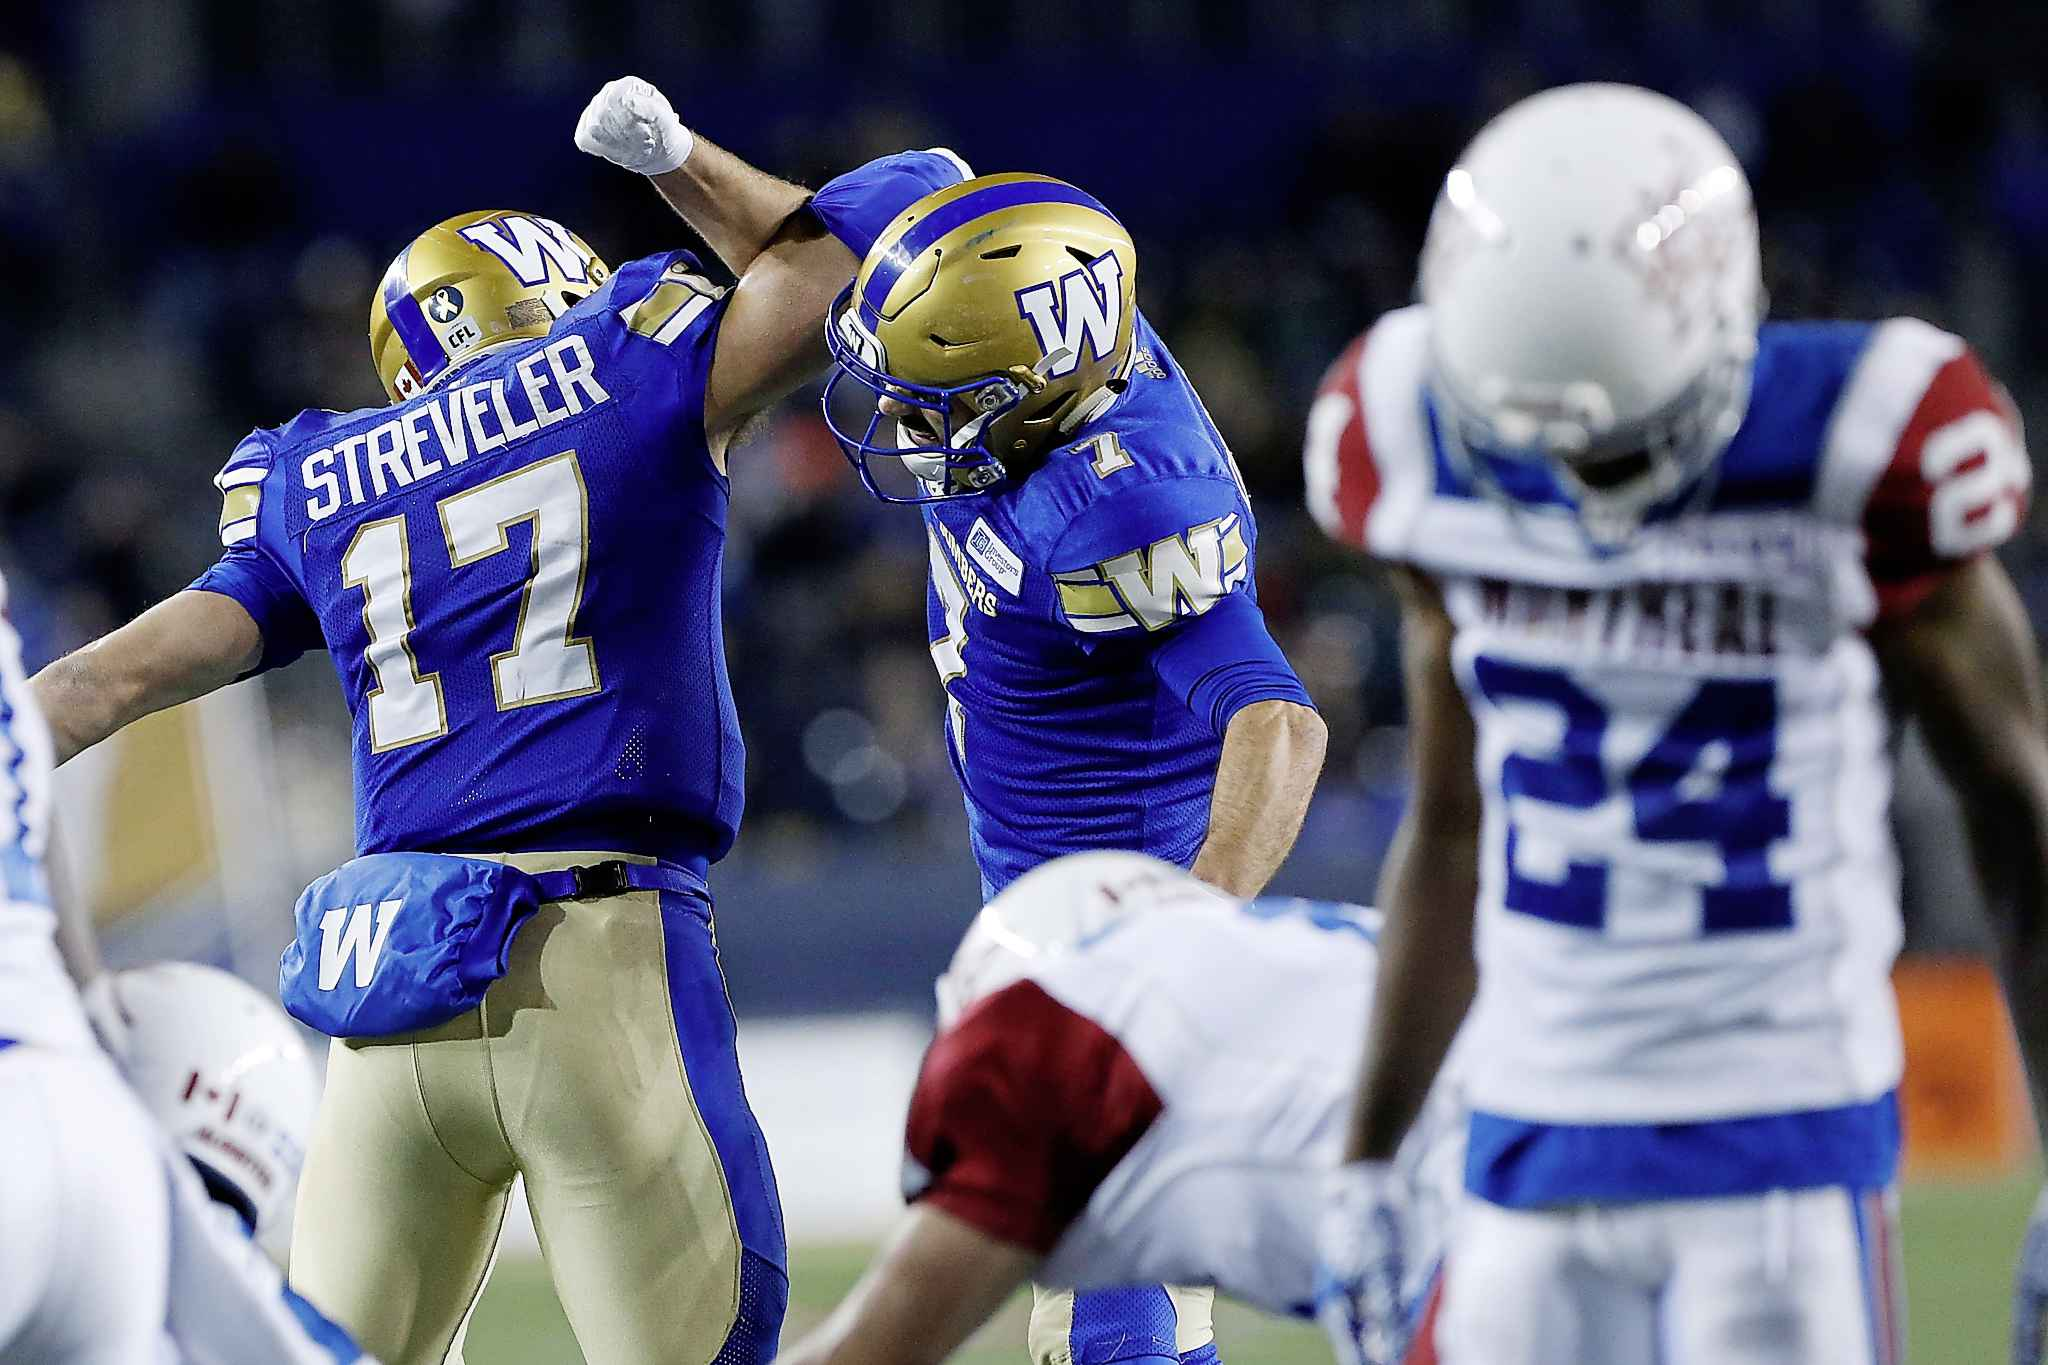 Chris Streveler and Weston Dressler celebrate Streveler's touchdown against the Montreal Alouettes Friday en route to a 31-14 victory. (John Woods / The Canadian Press)